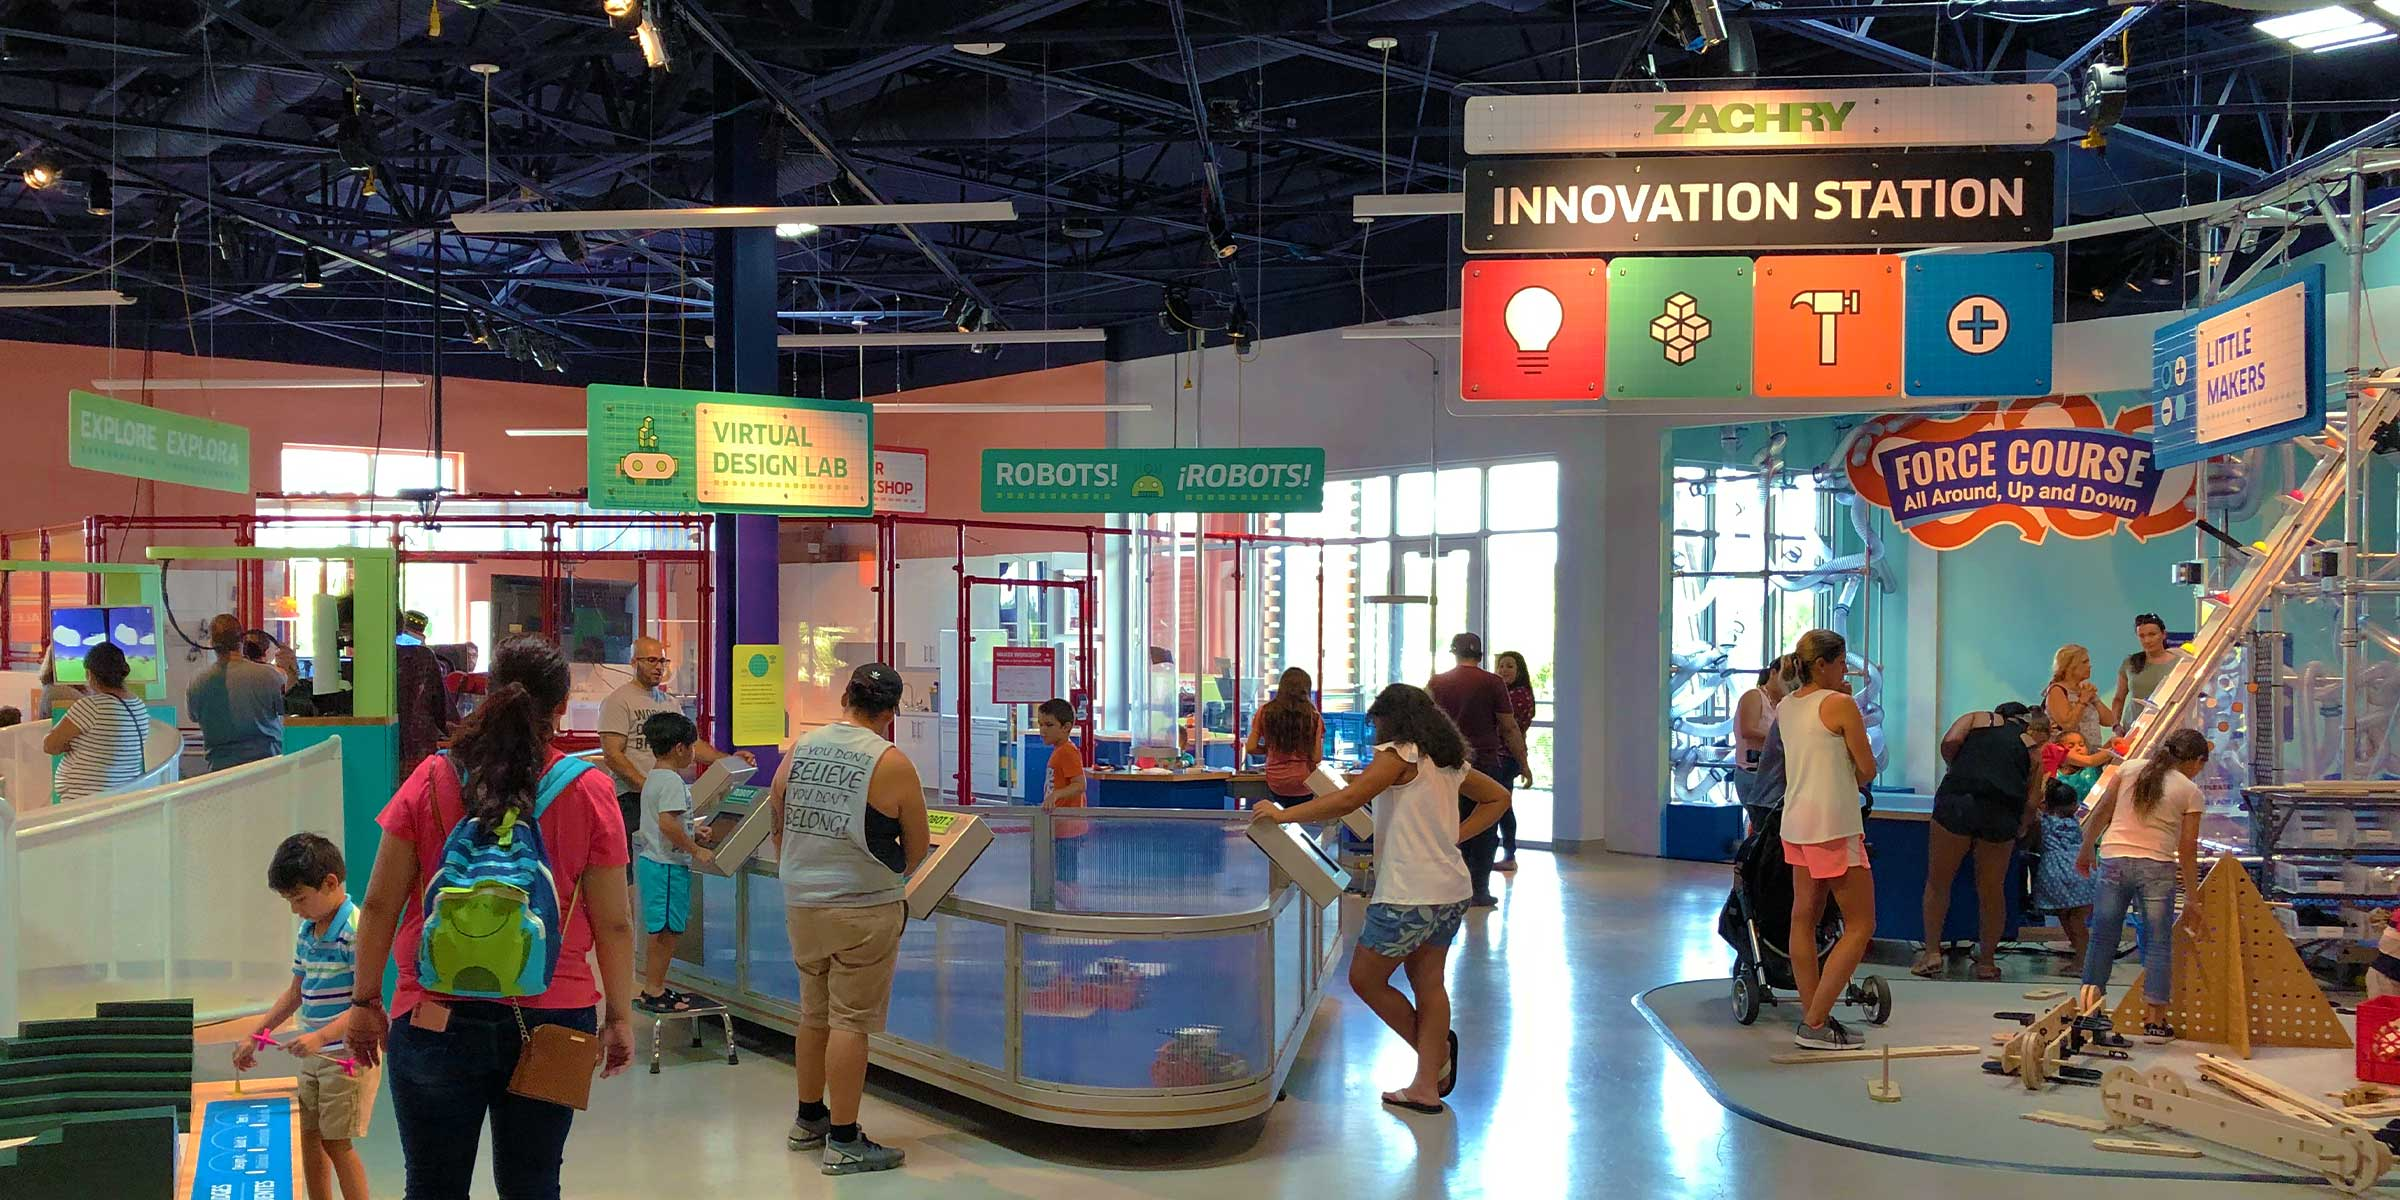 Innovation Station exhibit